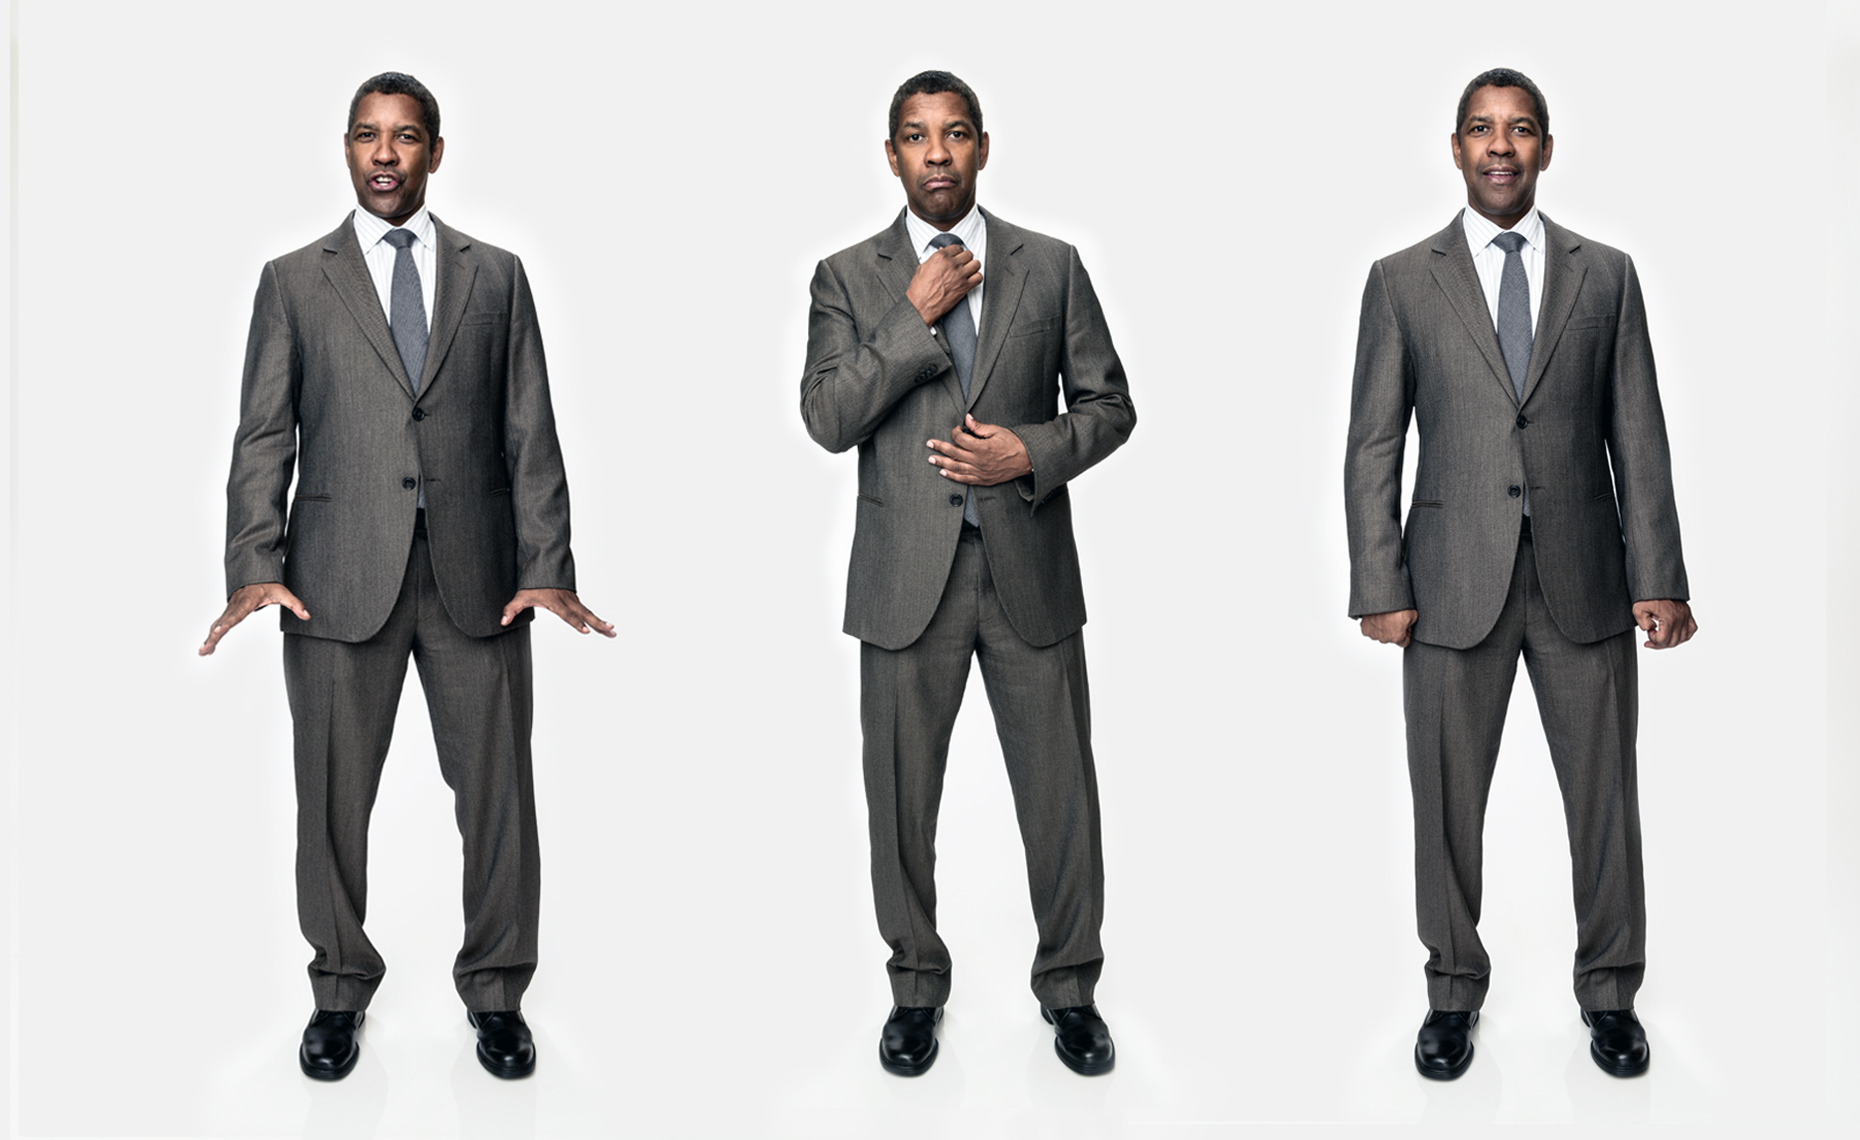 Denzel Washington Triptych